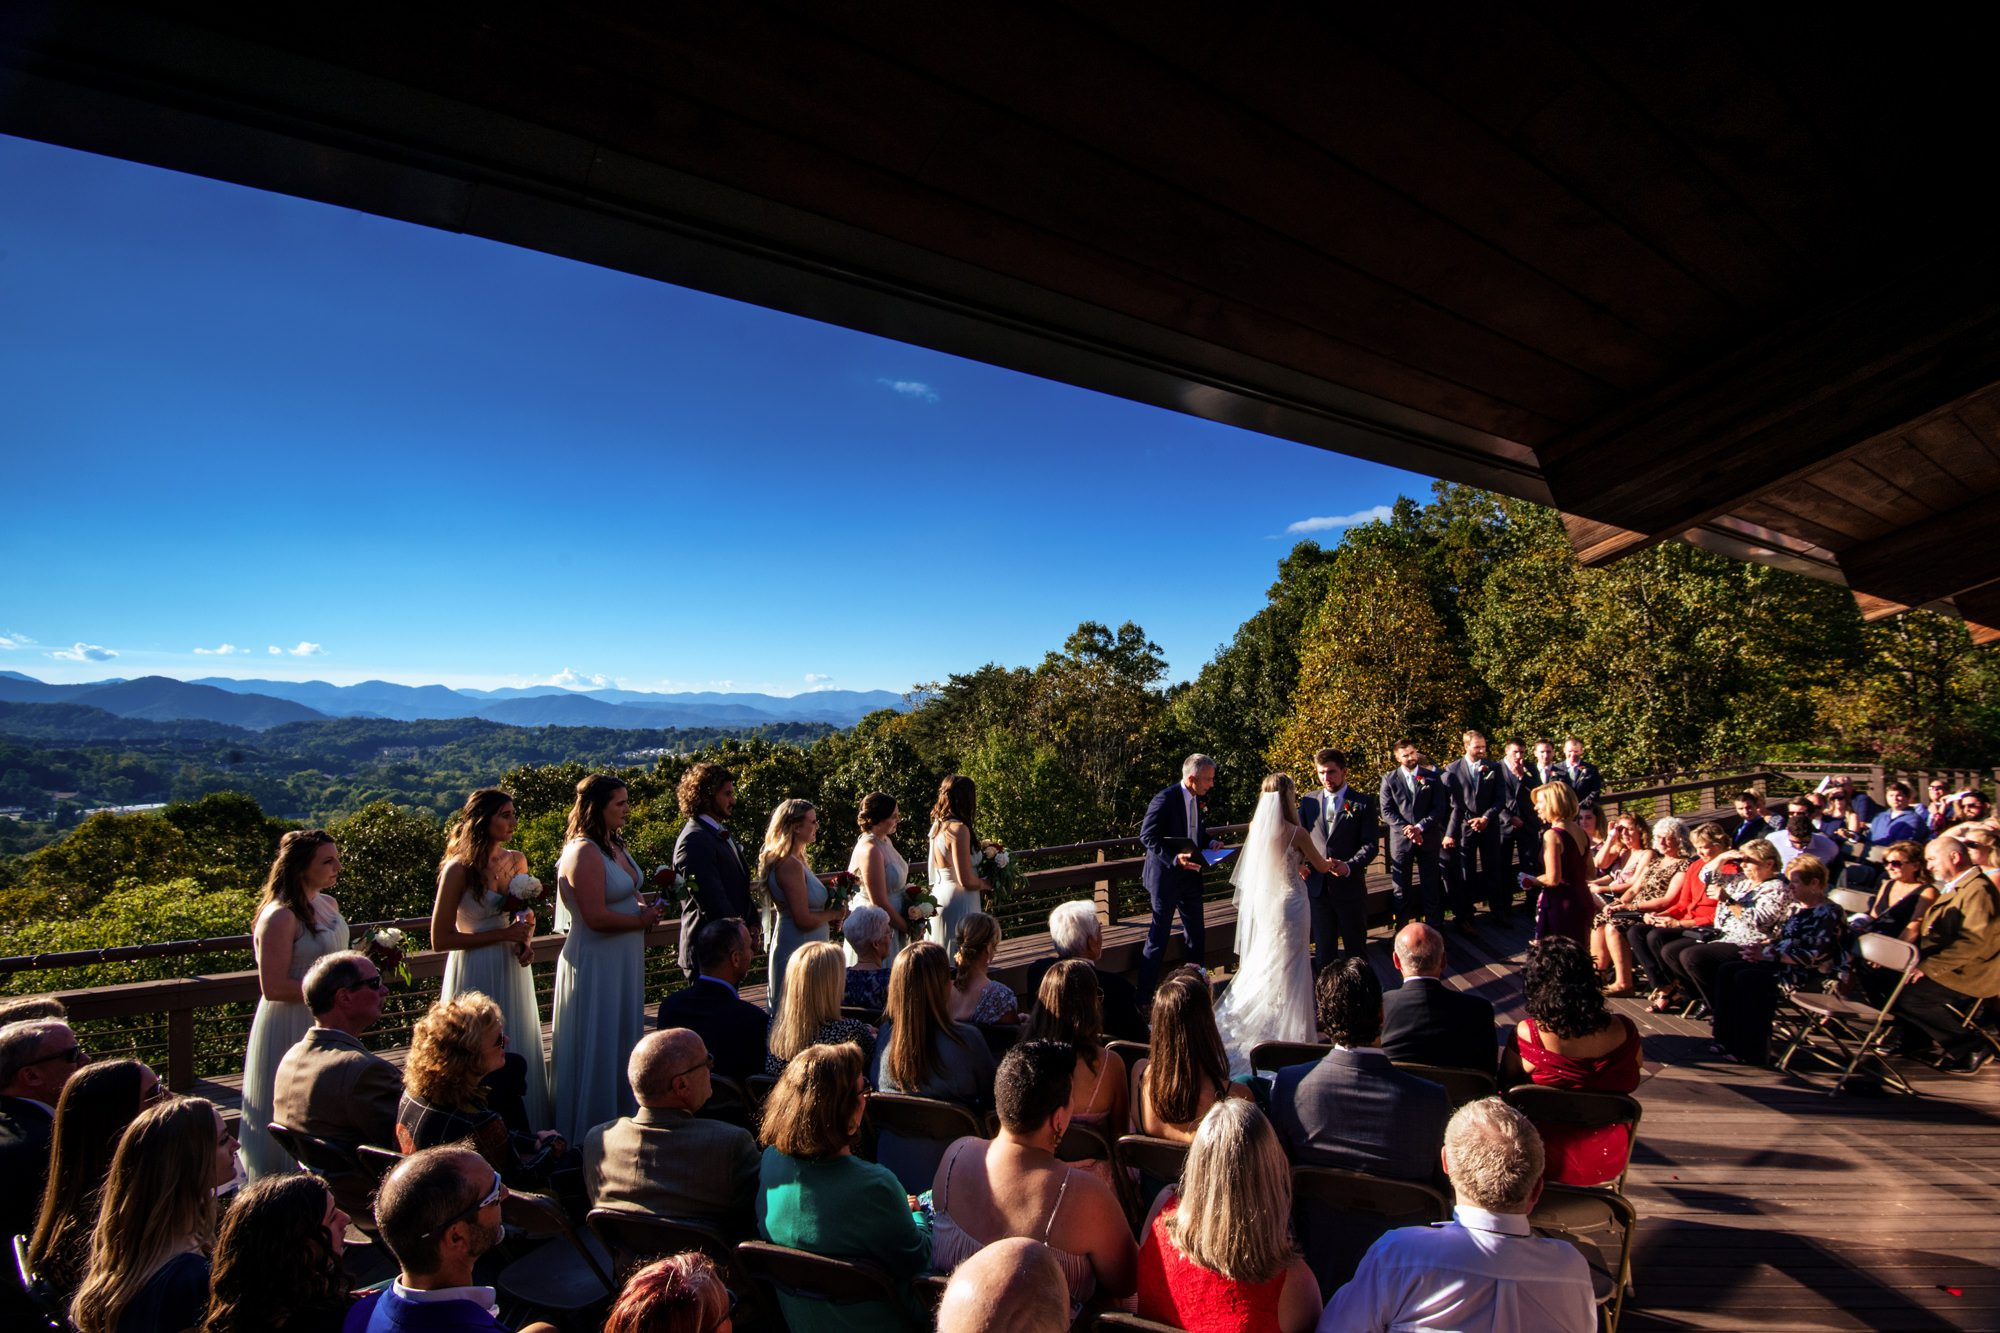 fall mountain wedding ceremony at crest center asheville nc